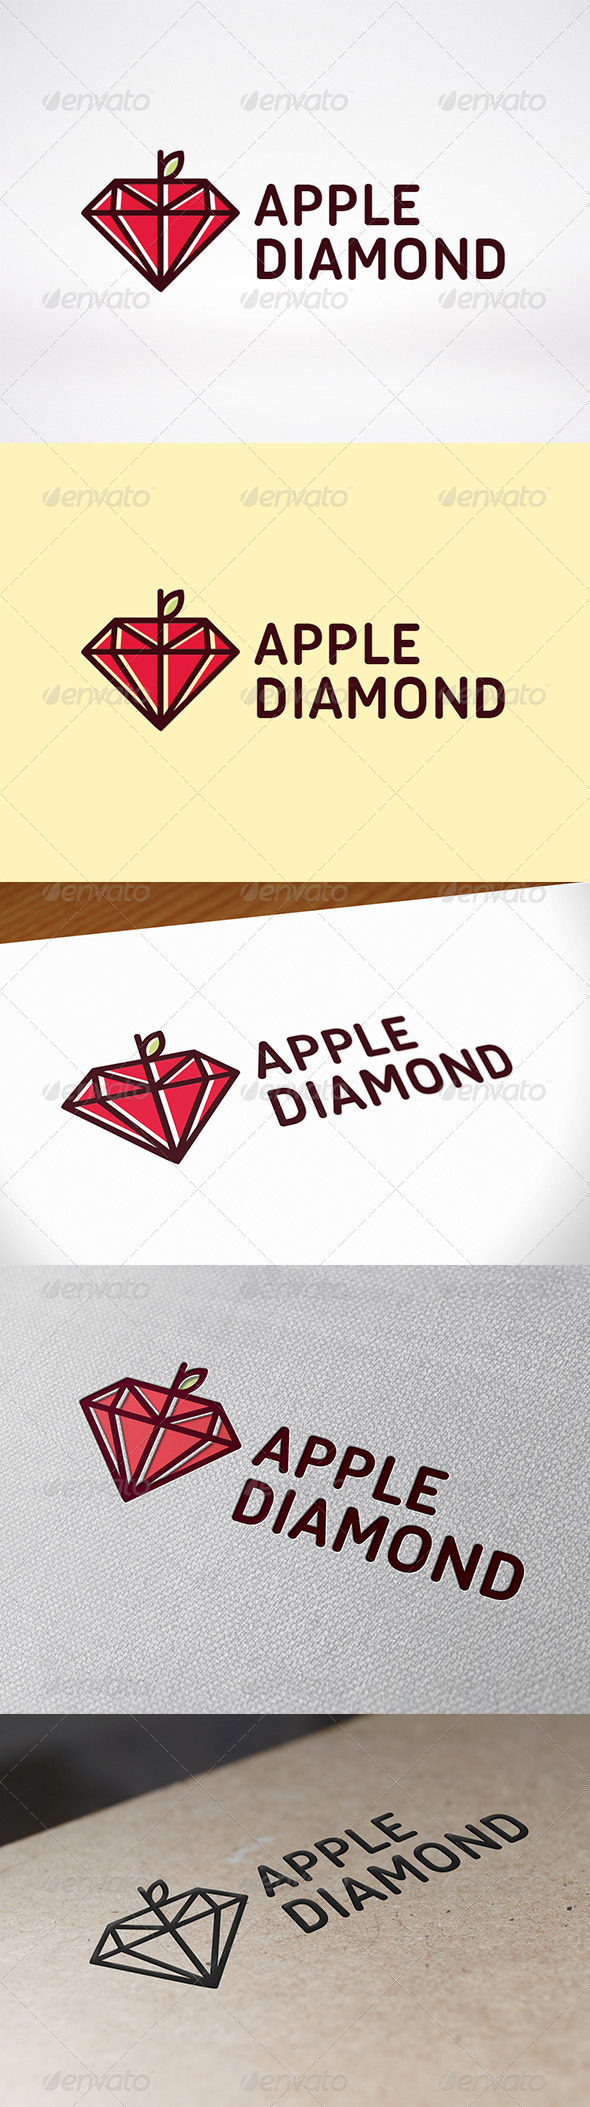 GraphicRiver Apple Diamond Logo Template 7041599